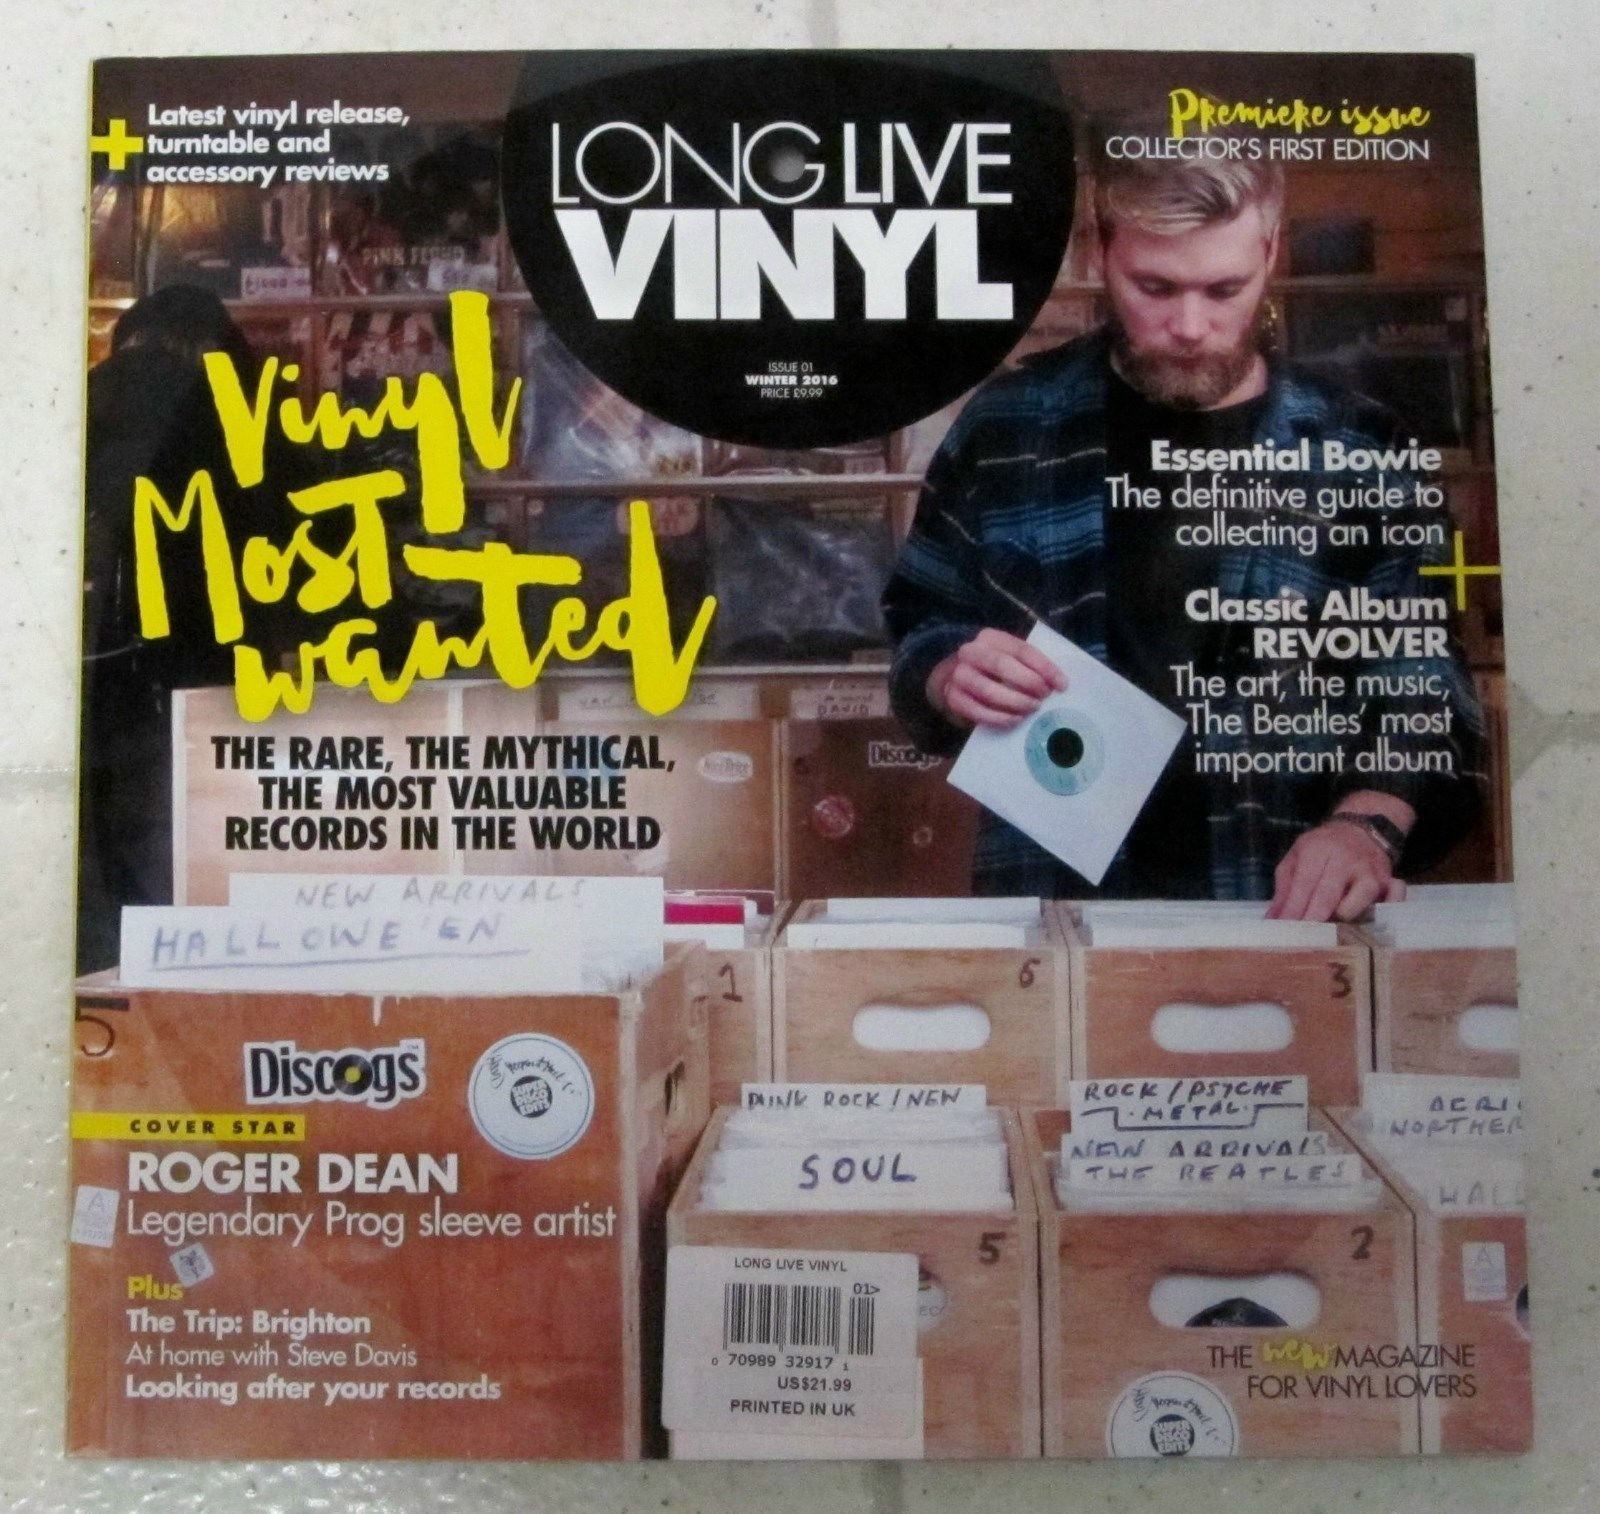 LONG LIVE VINYL MAGAZINE WINTER 2016, PREMIER ISSUE COLLECTOR'S FIRST EDITION.